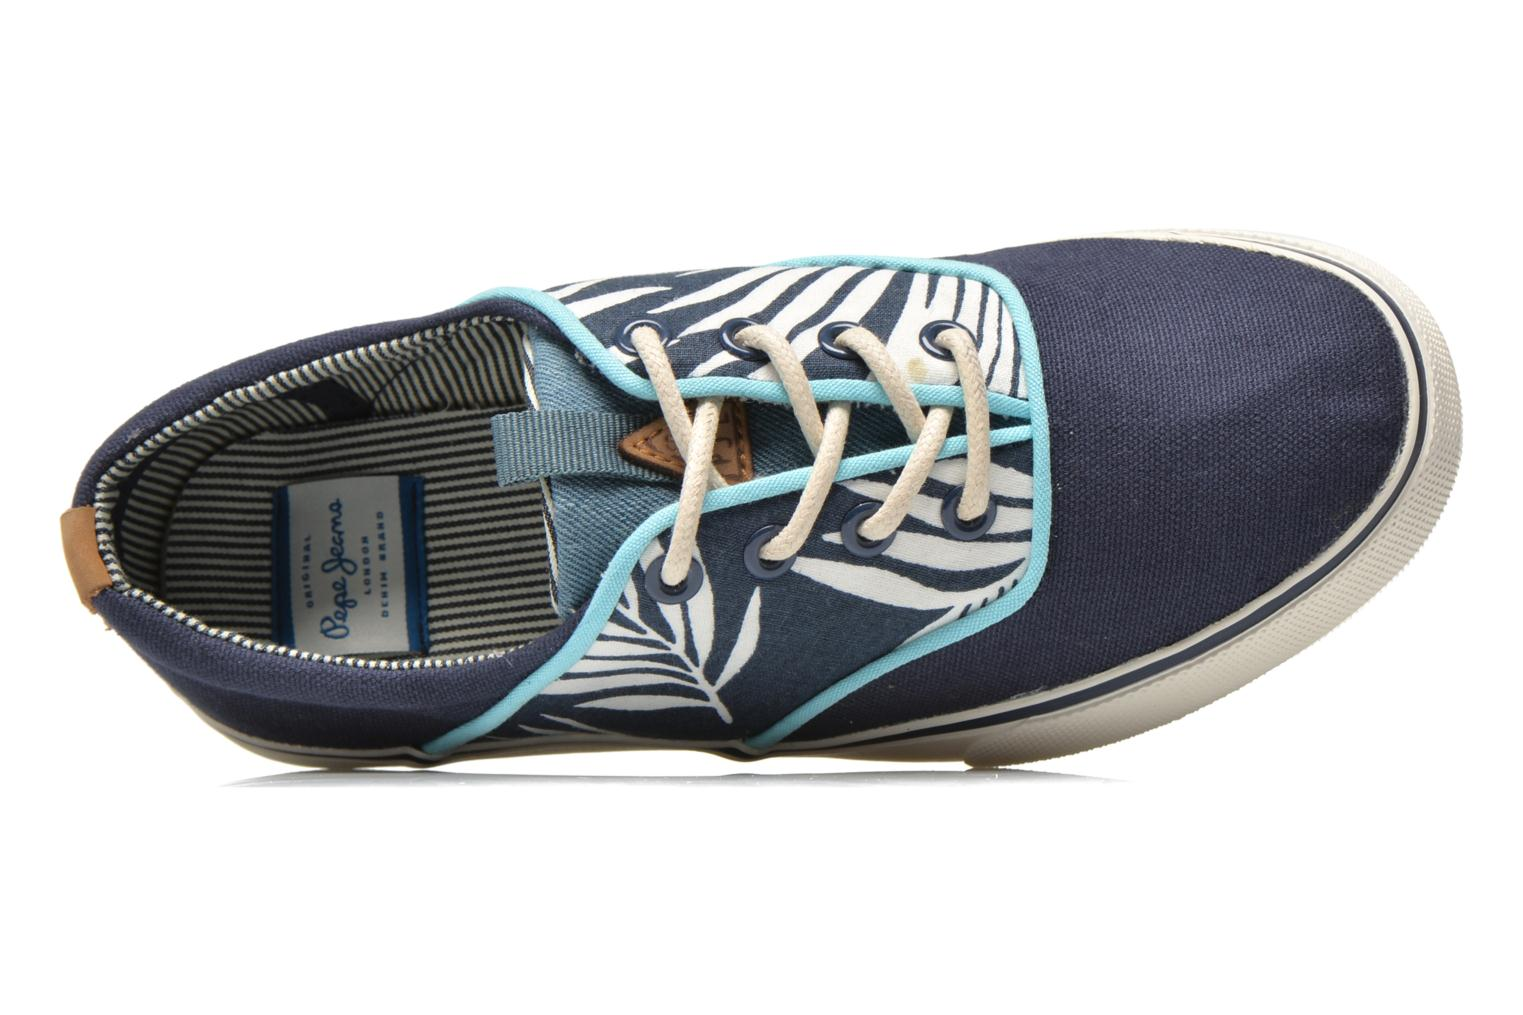 Traveler skate Naval Blue